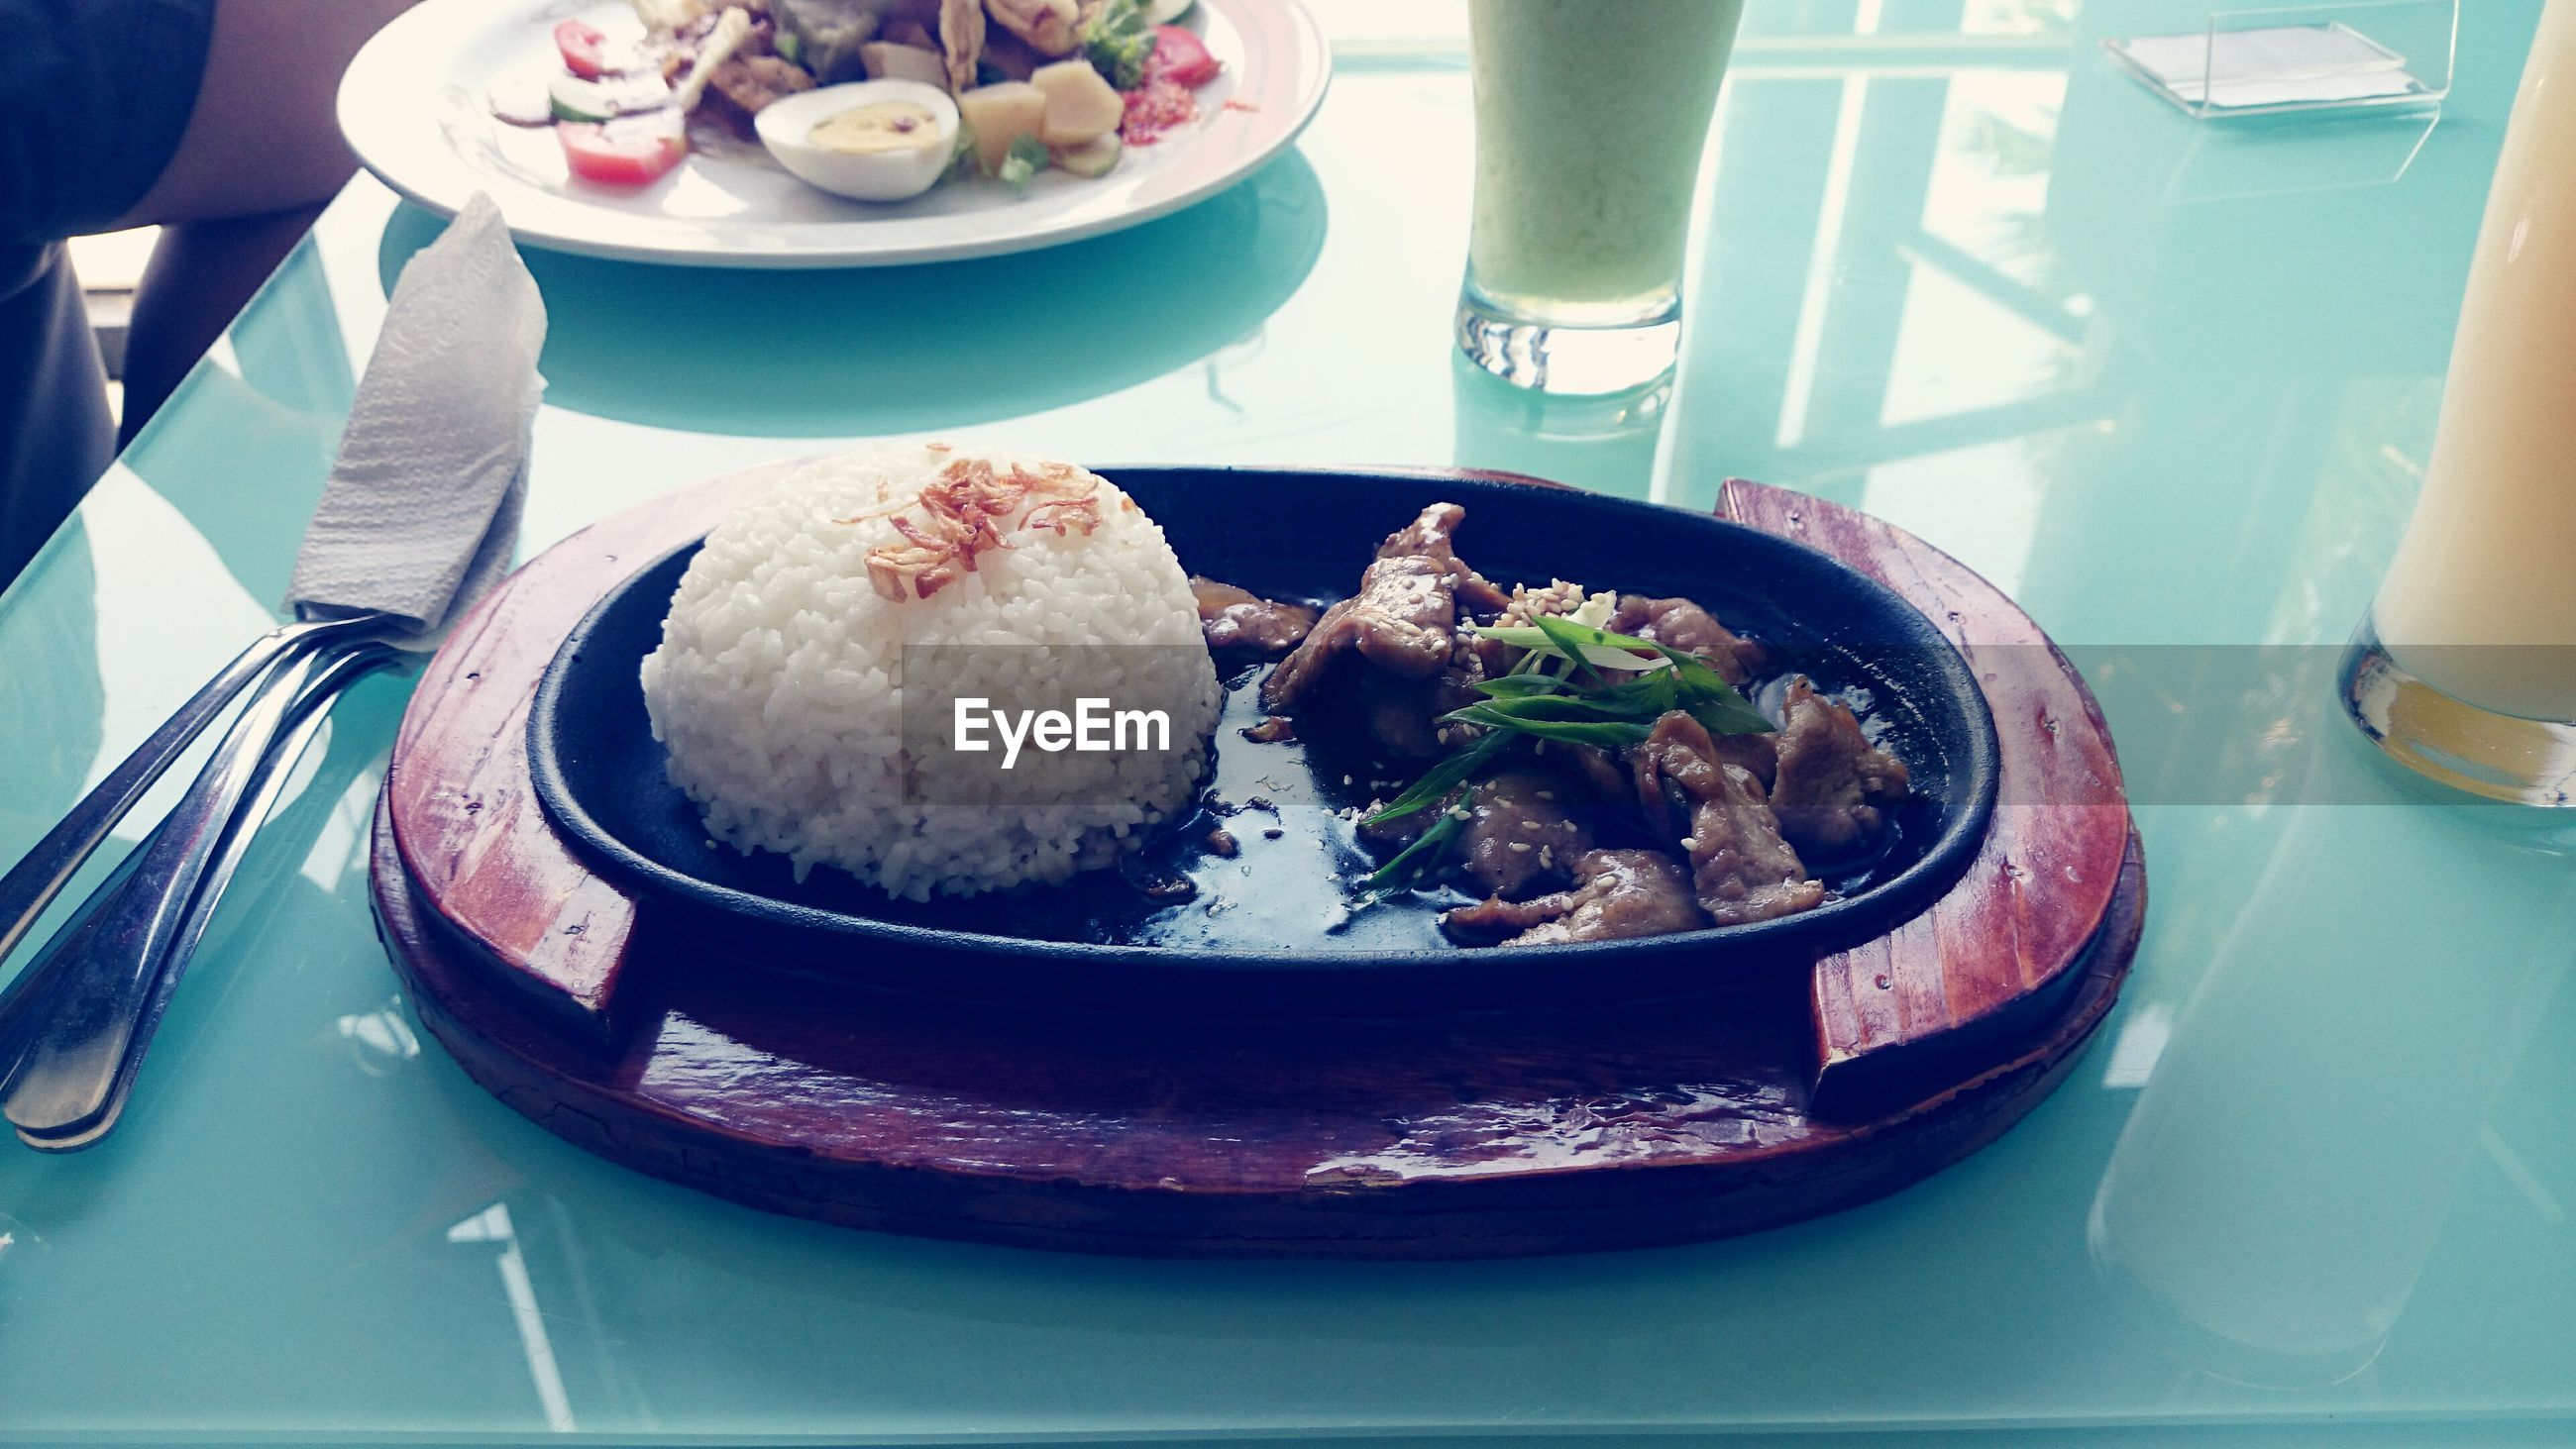 High angle view of meat and rice in plate on table